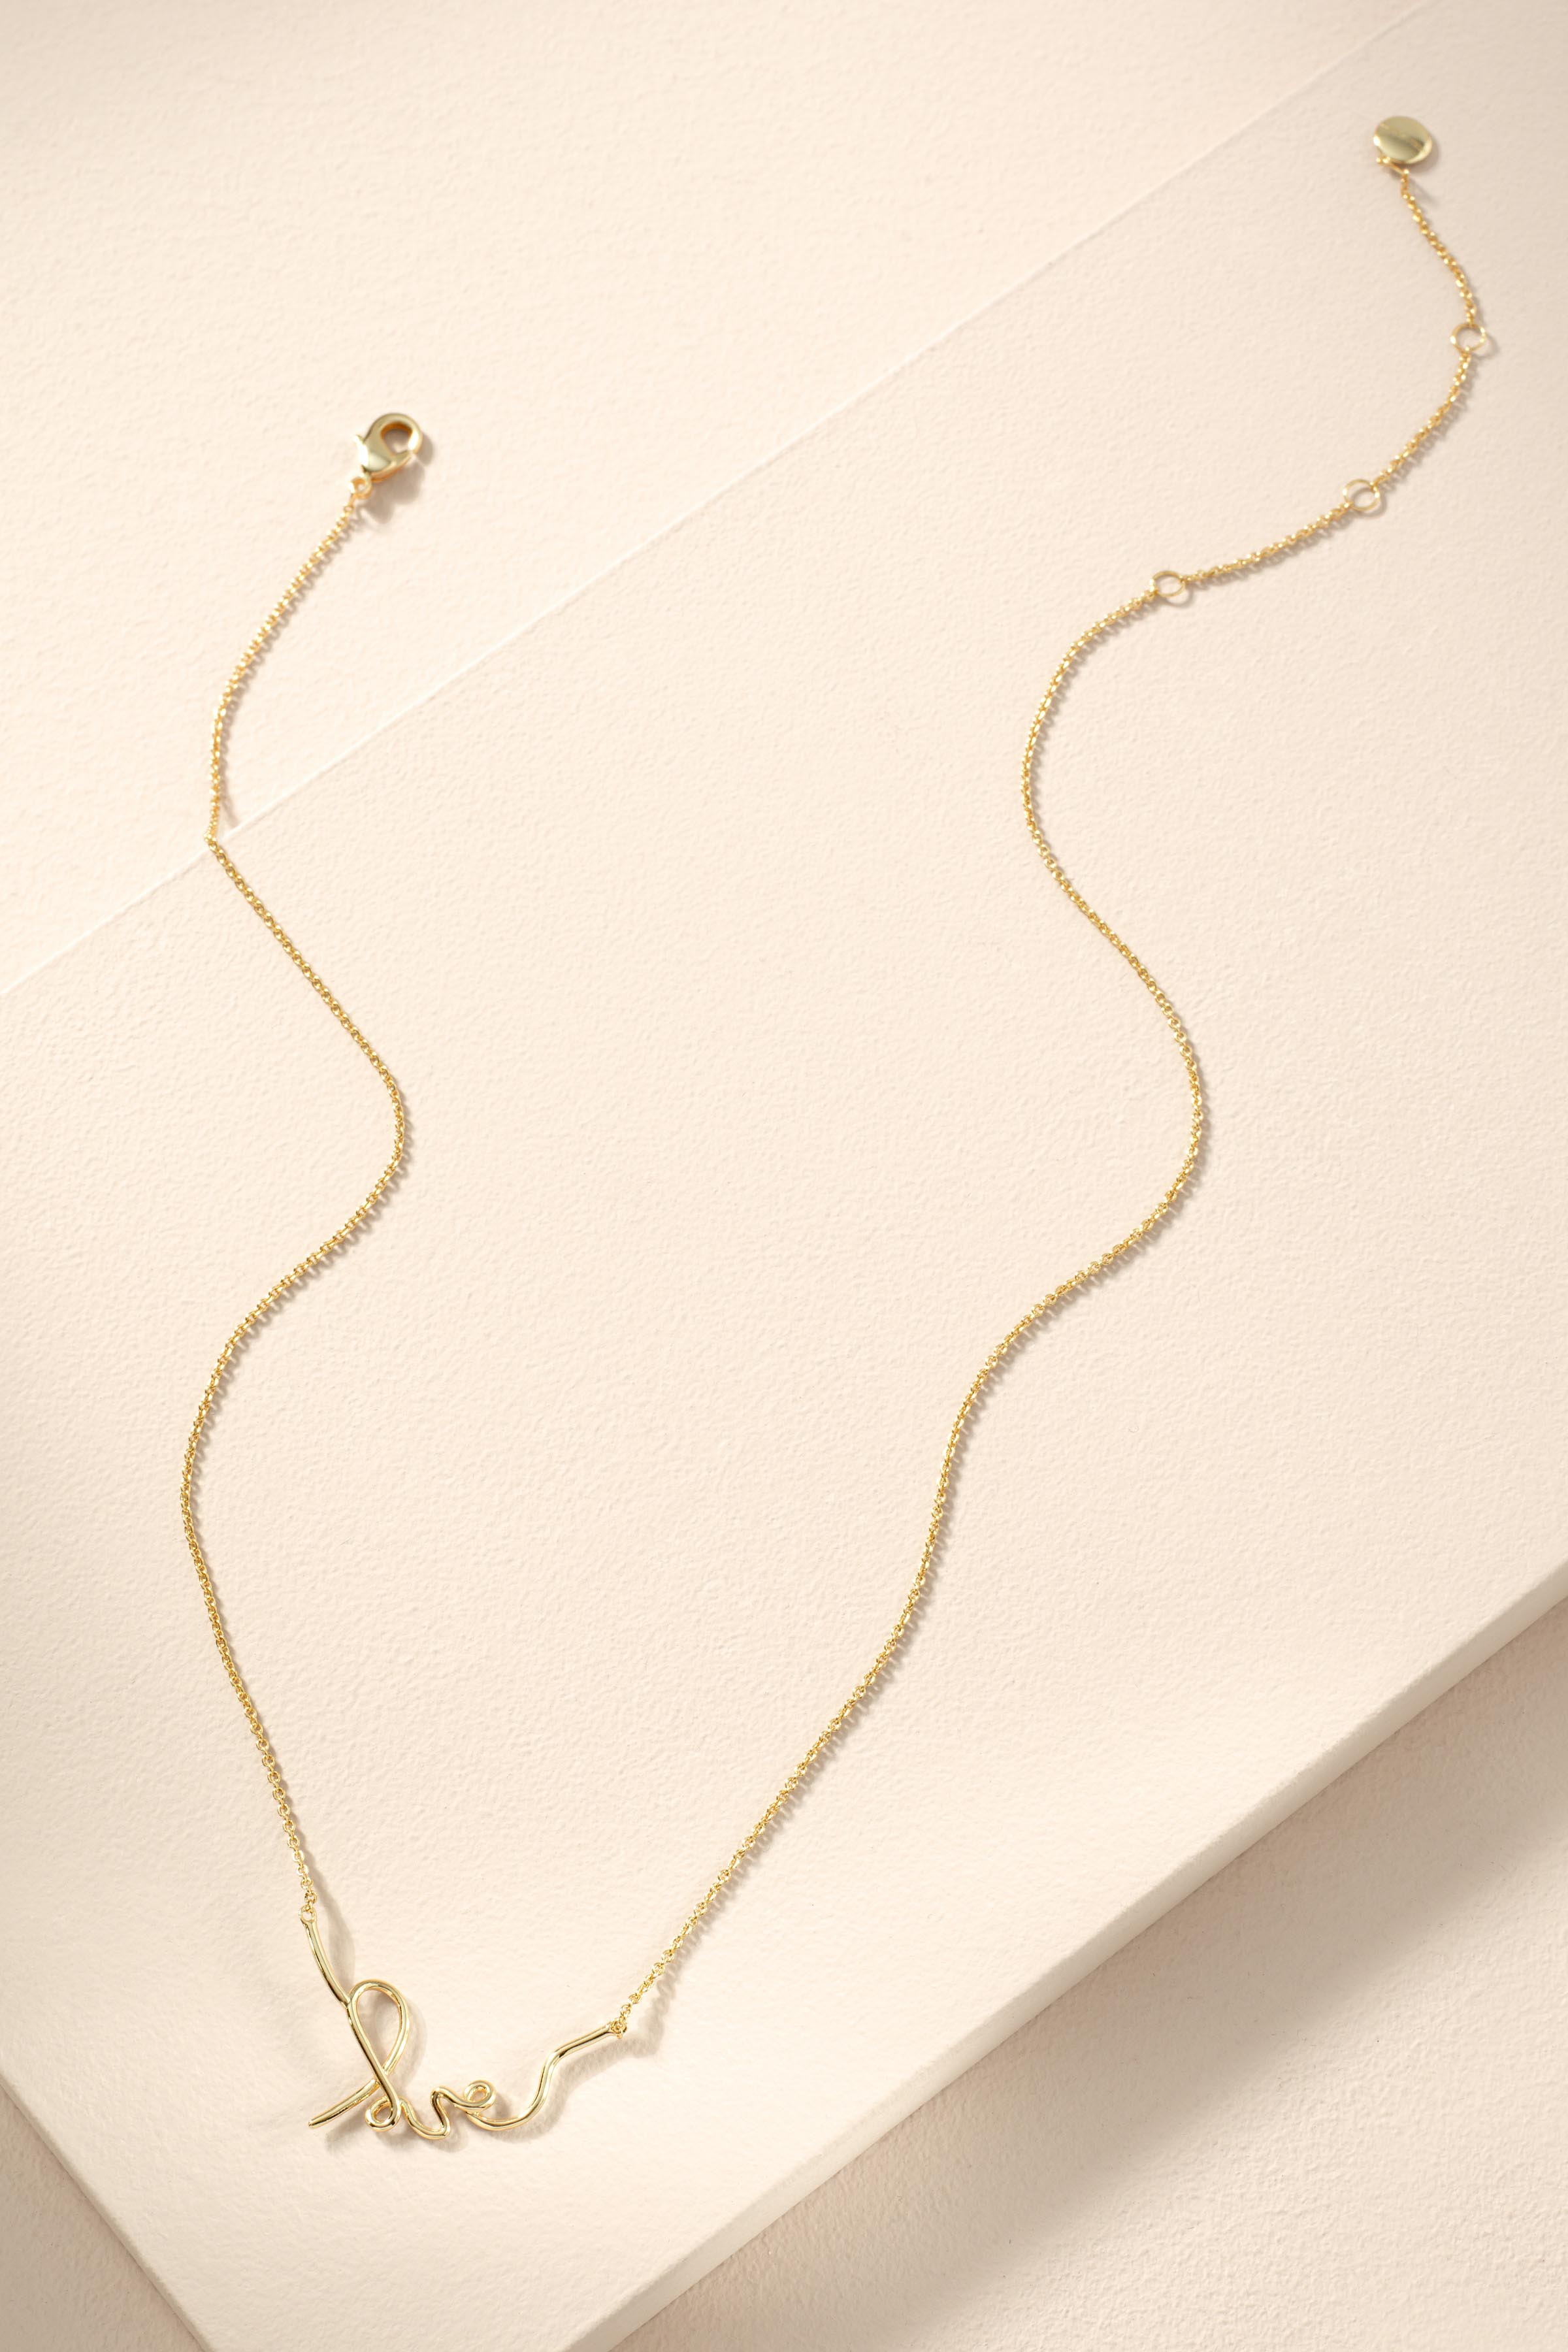 So Glad and Very By The White Stuff Multi Layer Chain Necklace Silver Colour